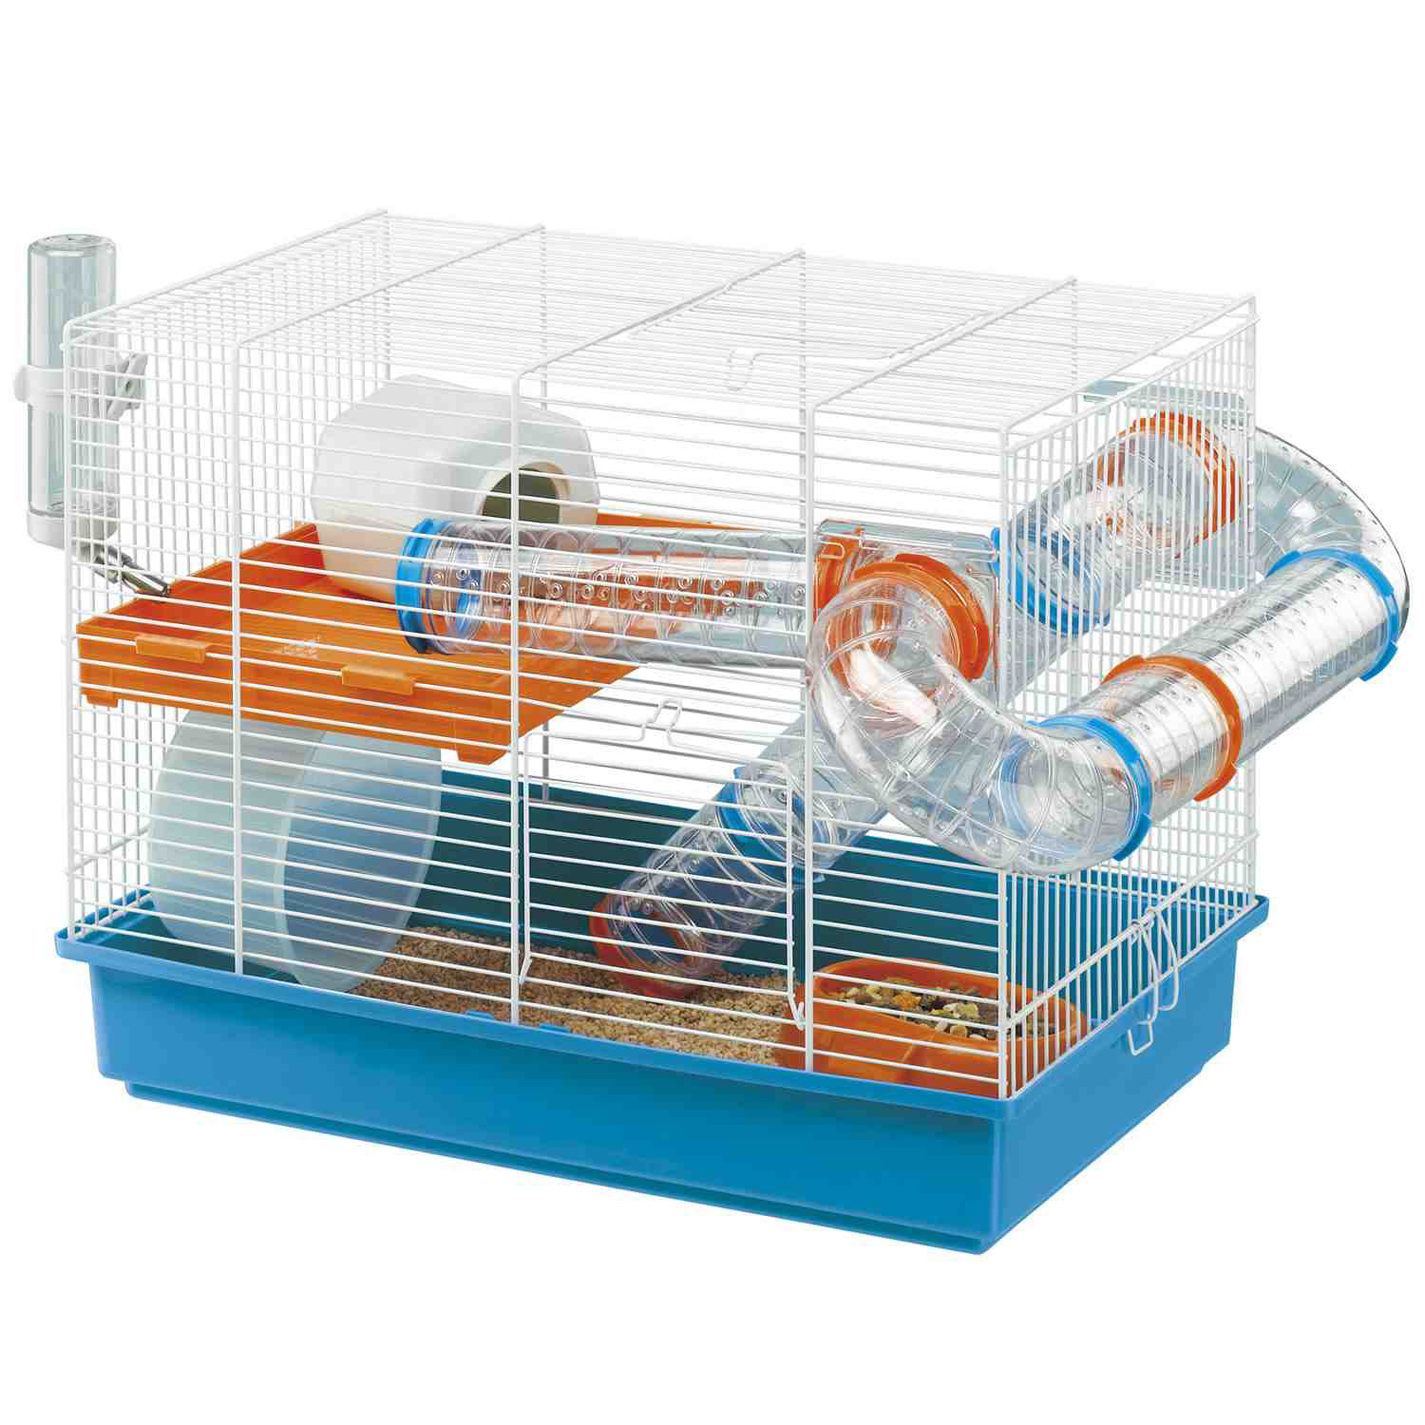 What kind of cage should I get for my hamster